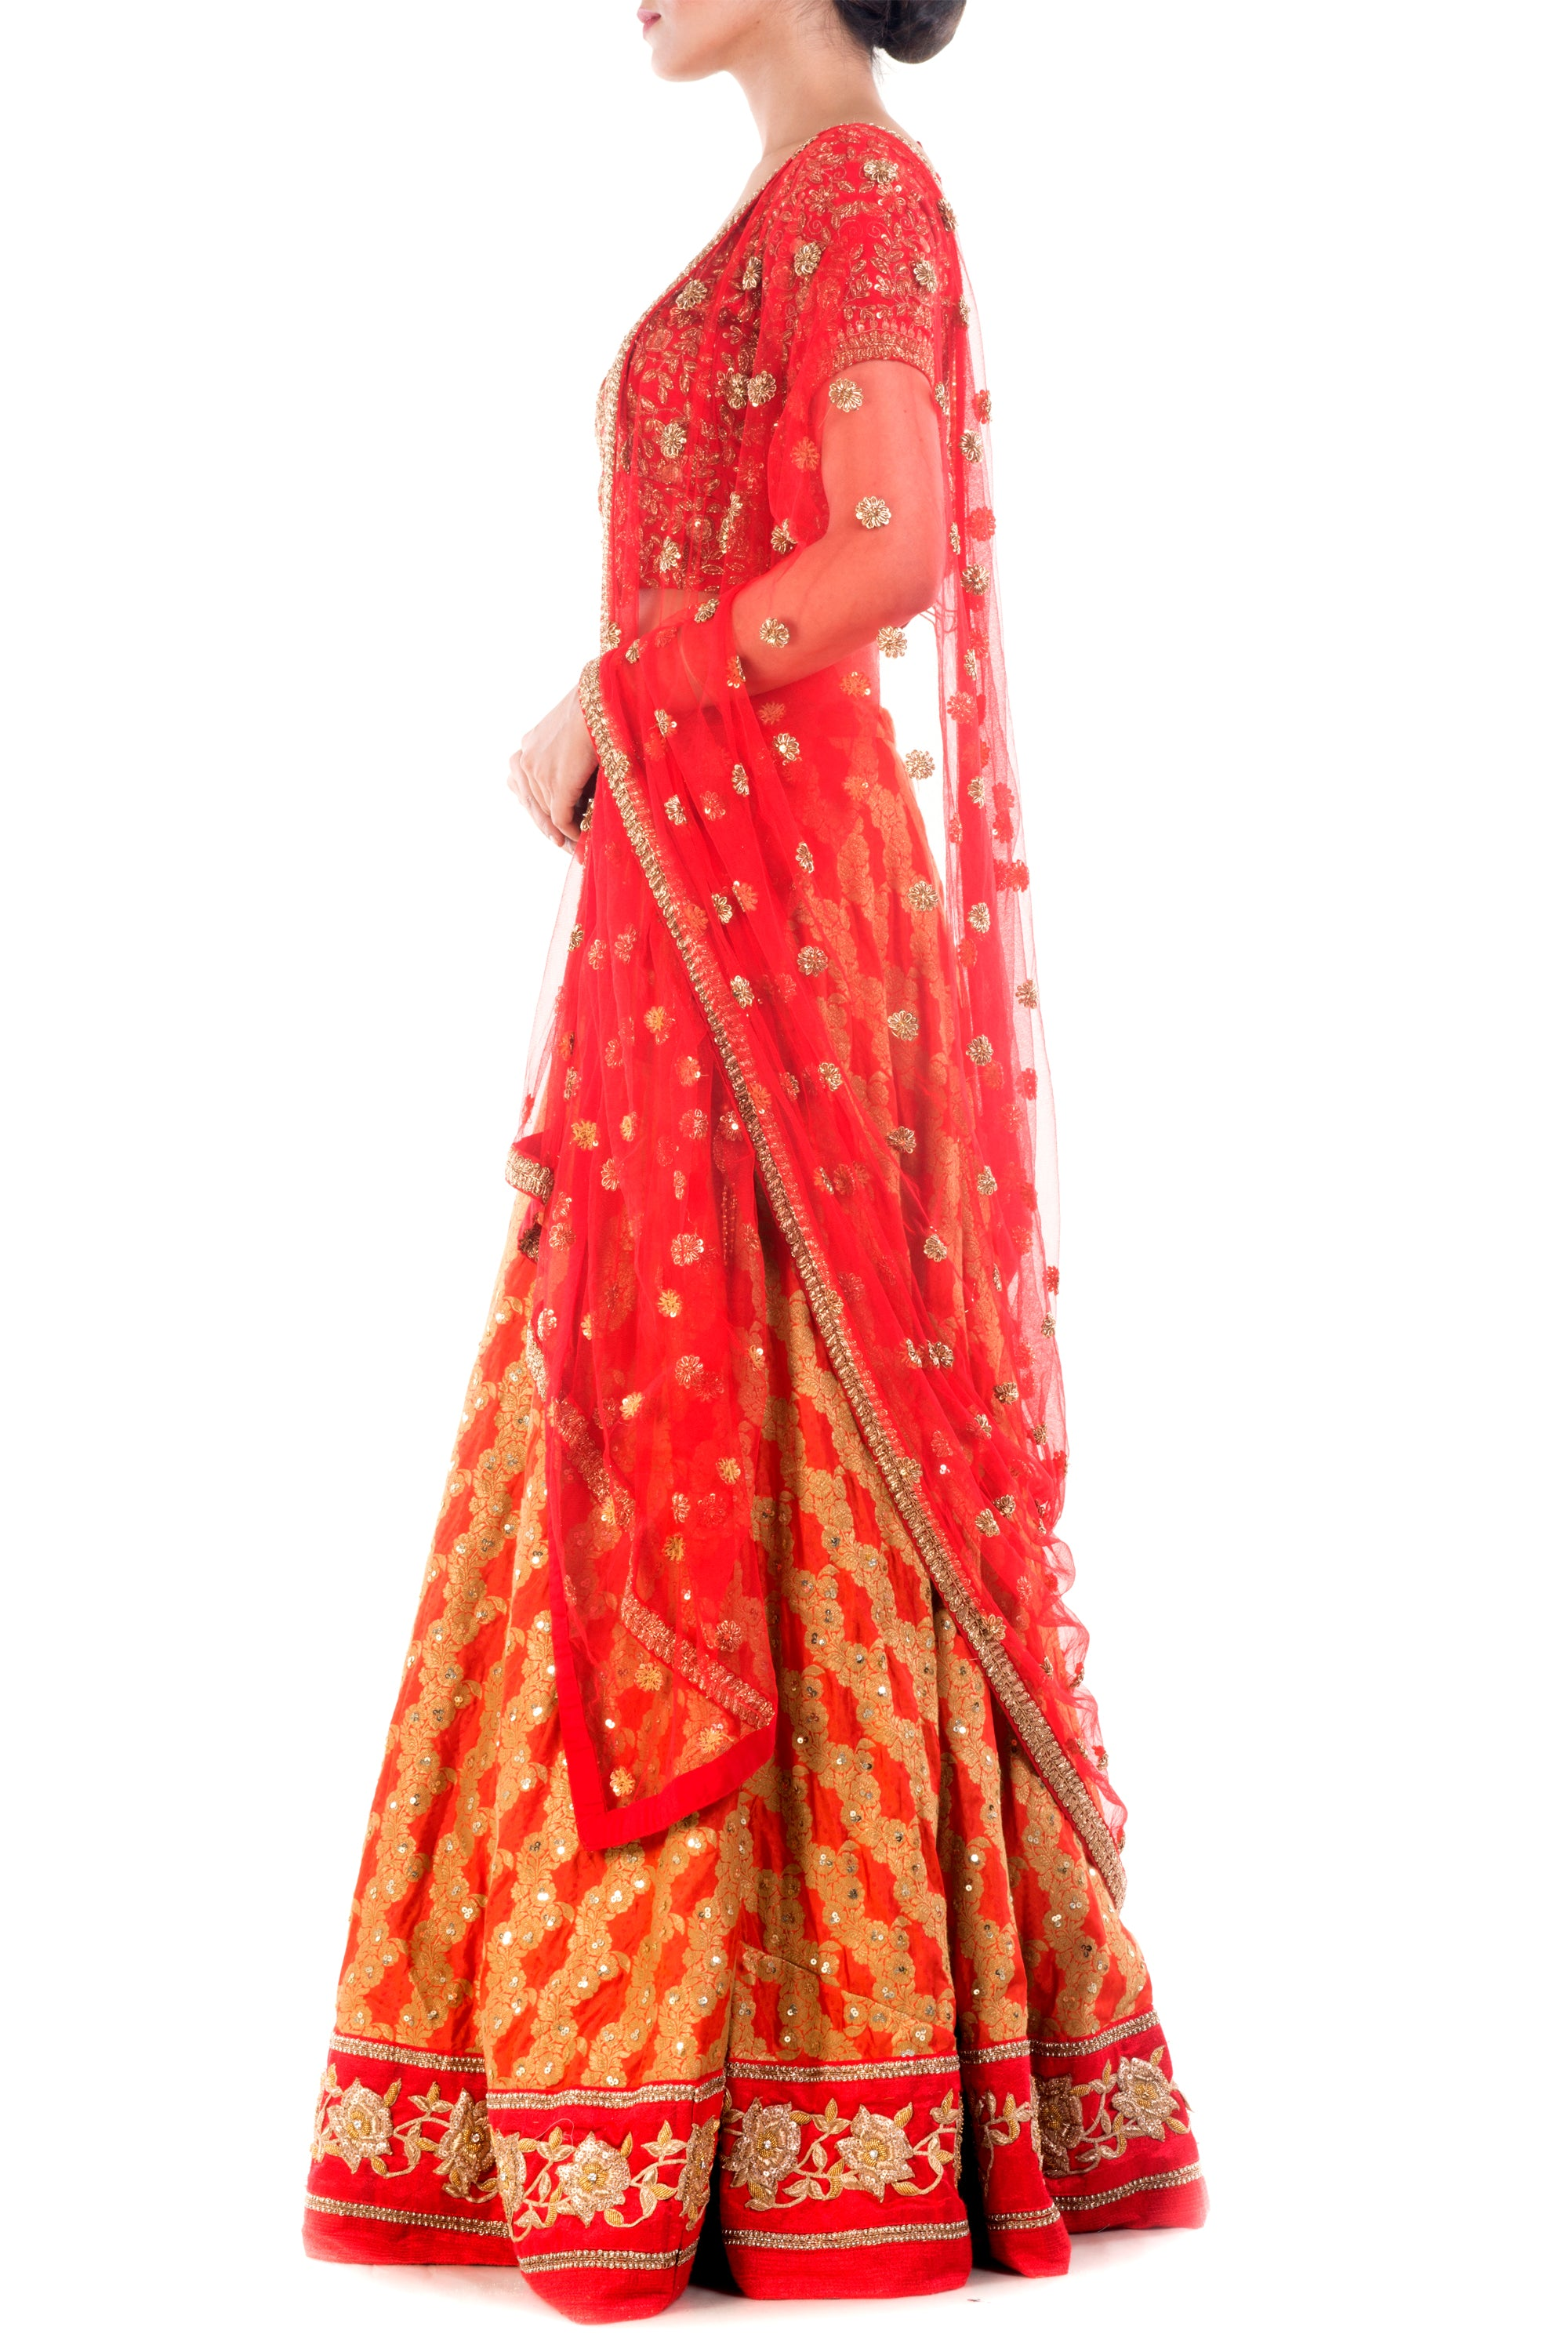 Crimson Red Gold Embellished Bridal Lehenga Side